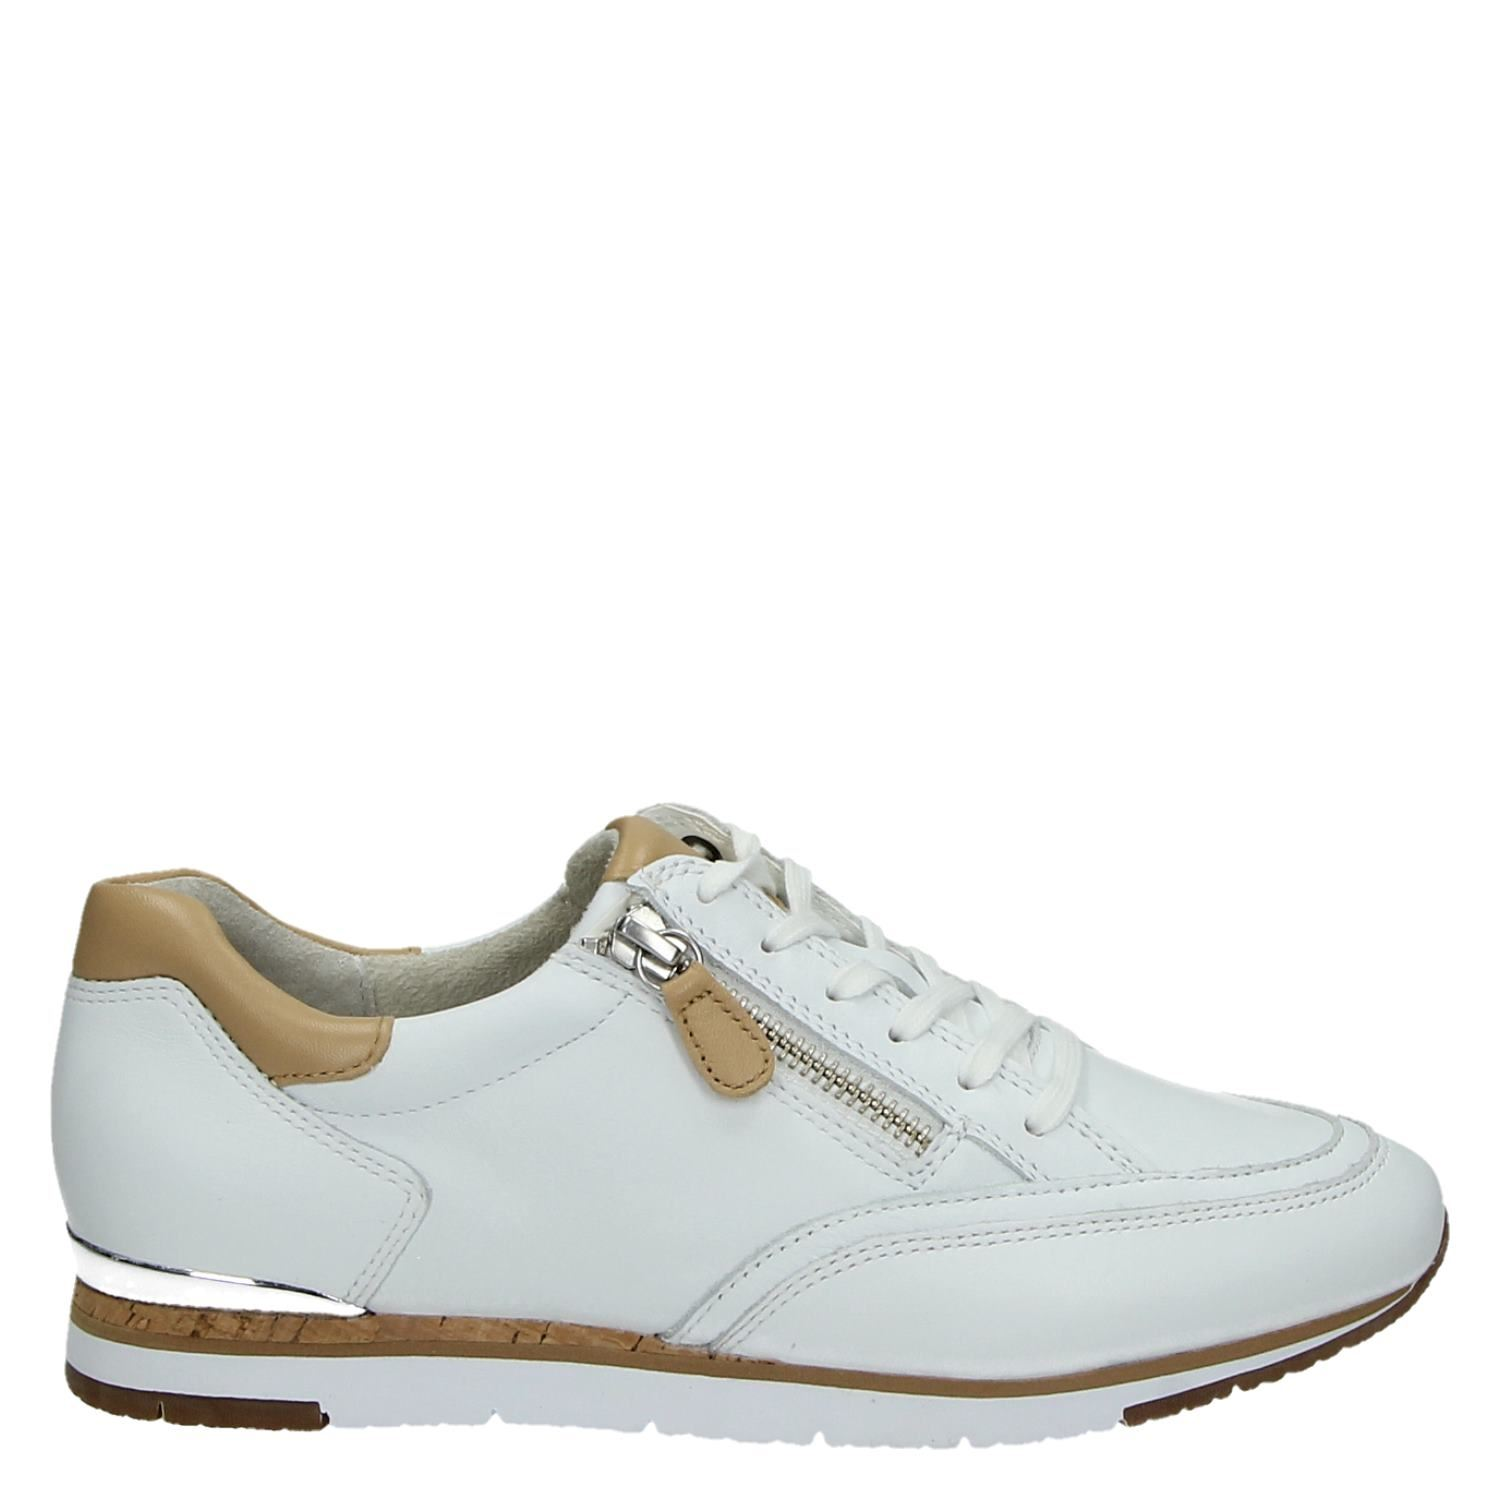 Lage Dames Gabor Gabor Sneakers Wit Dames Wit Dames Lage Sneakers Gabor fybg76vY